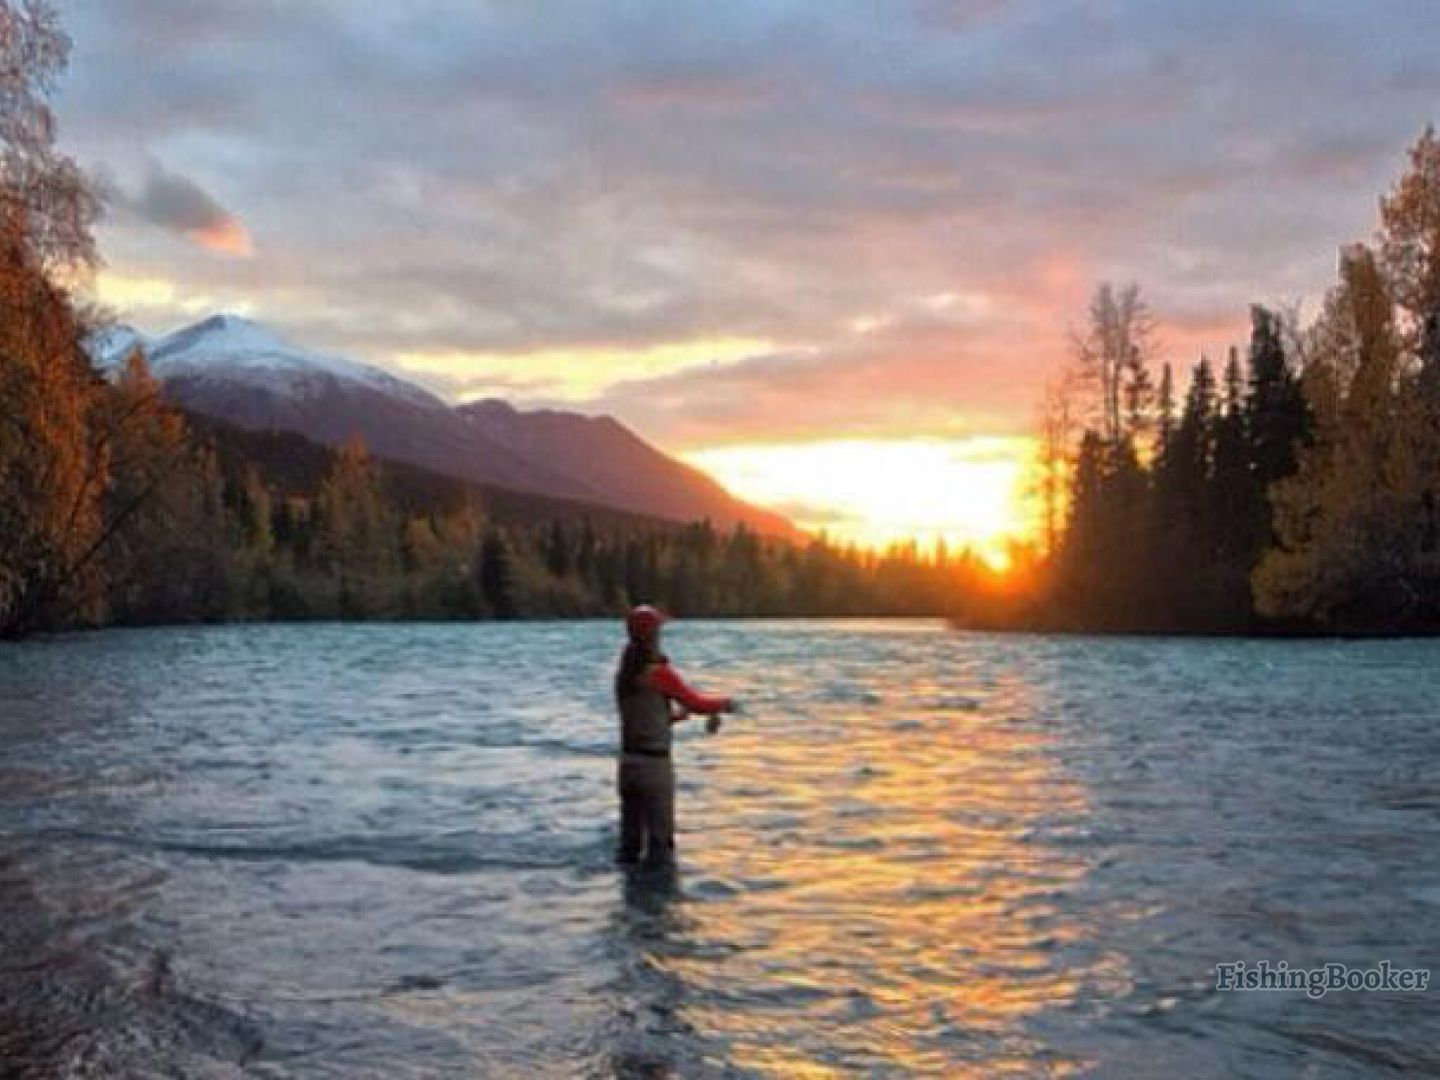 Cooper landing fishing guide llc cooper landing alaska for Cooper landing fishing guides